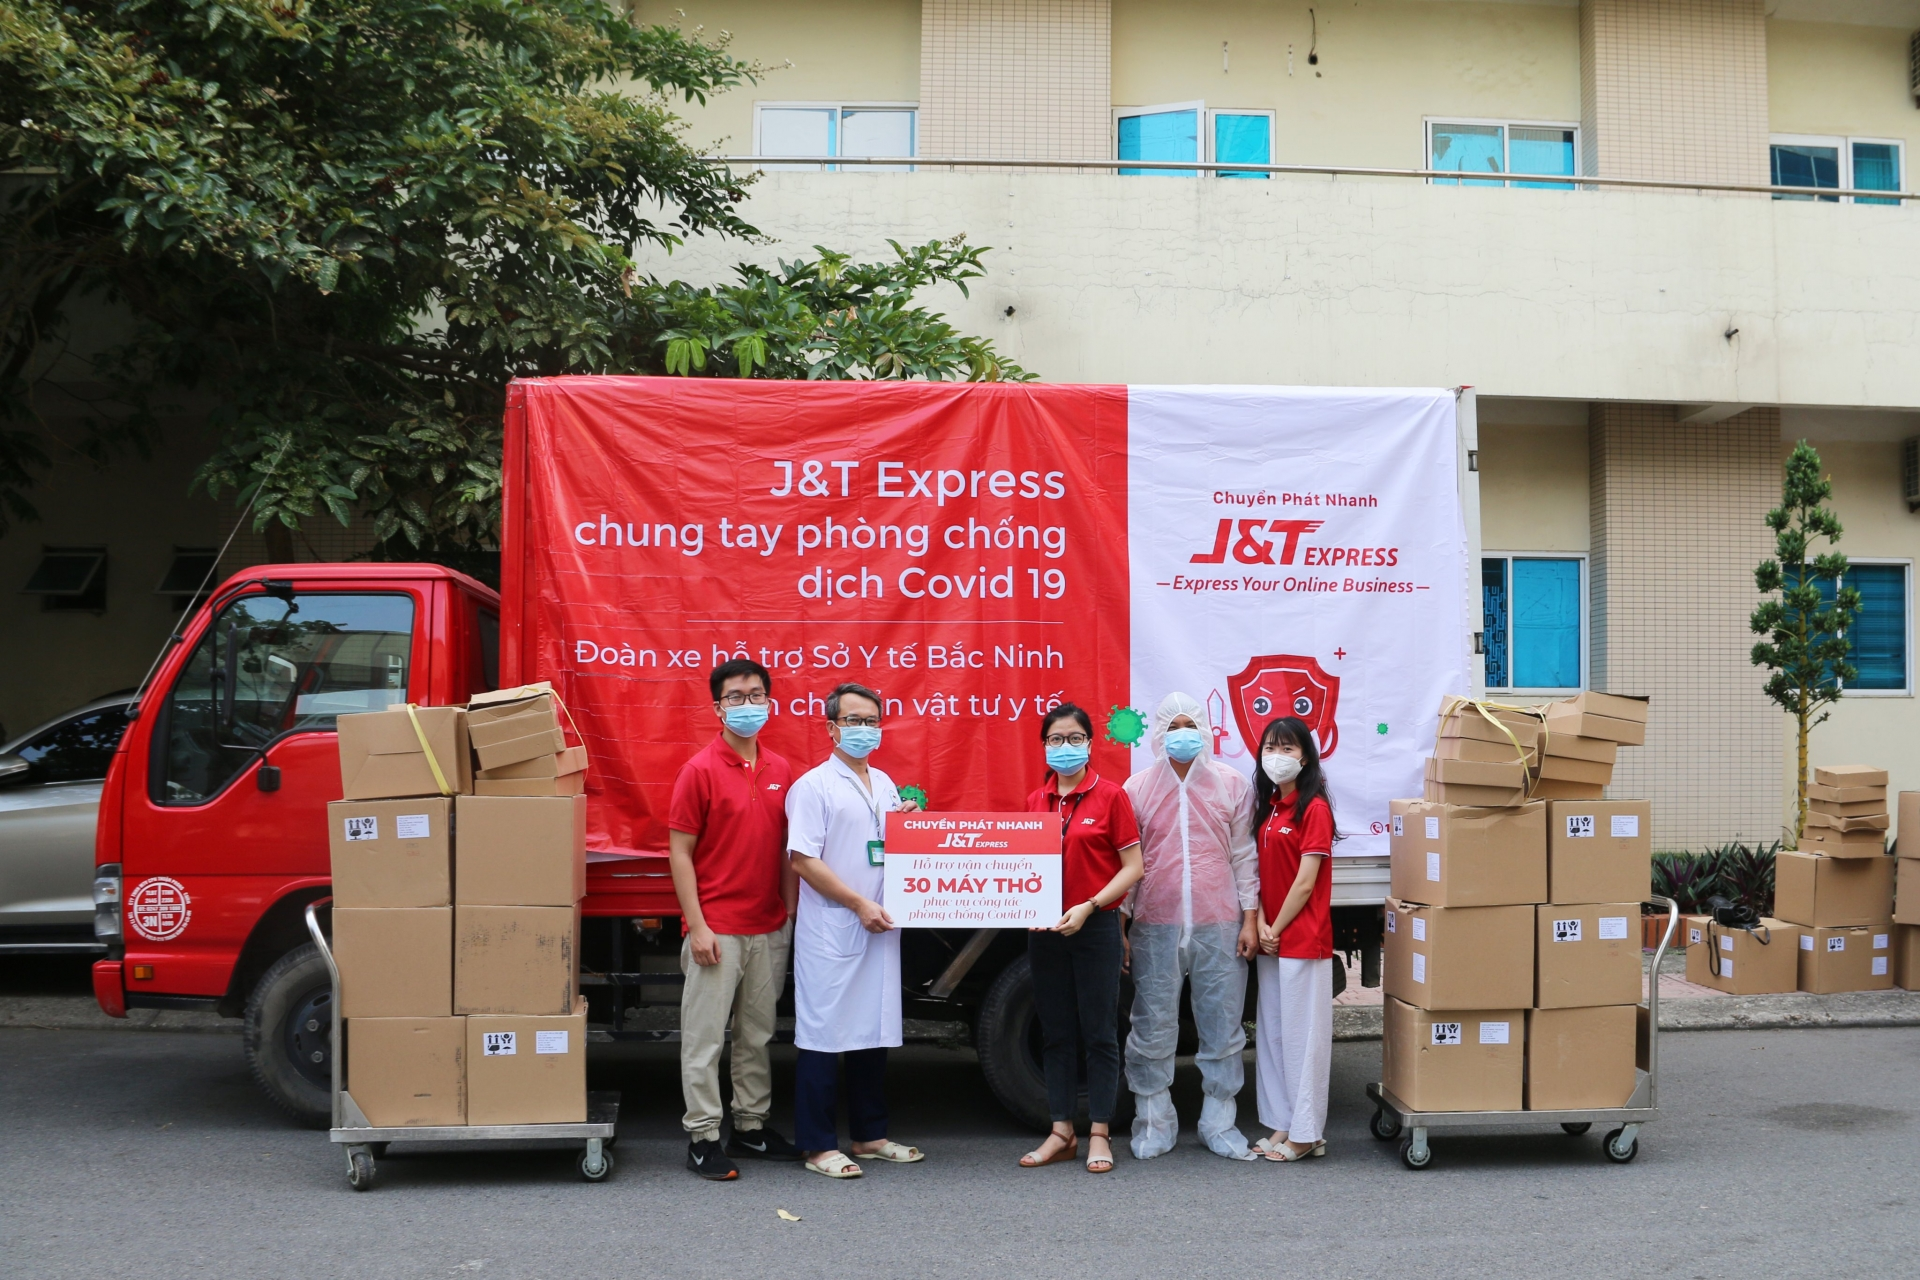 J&T Express launches COVID-19 relief fund to support employees